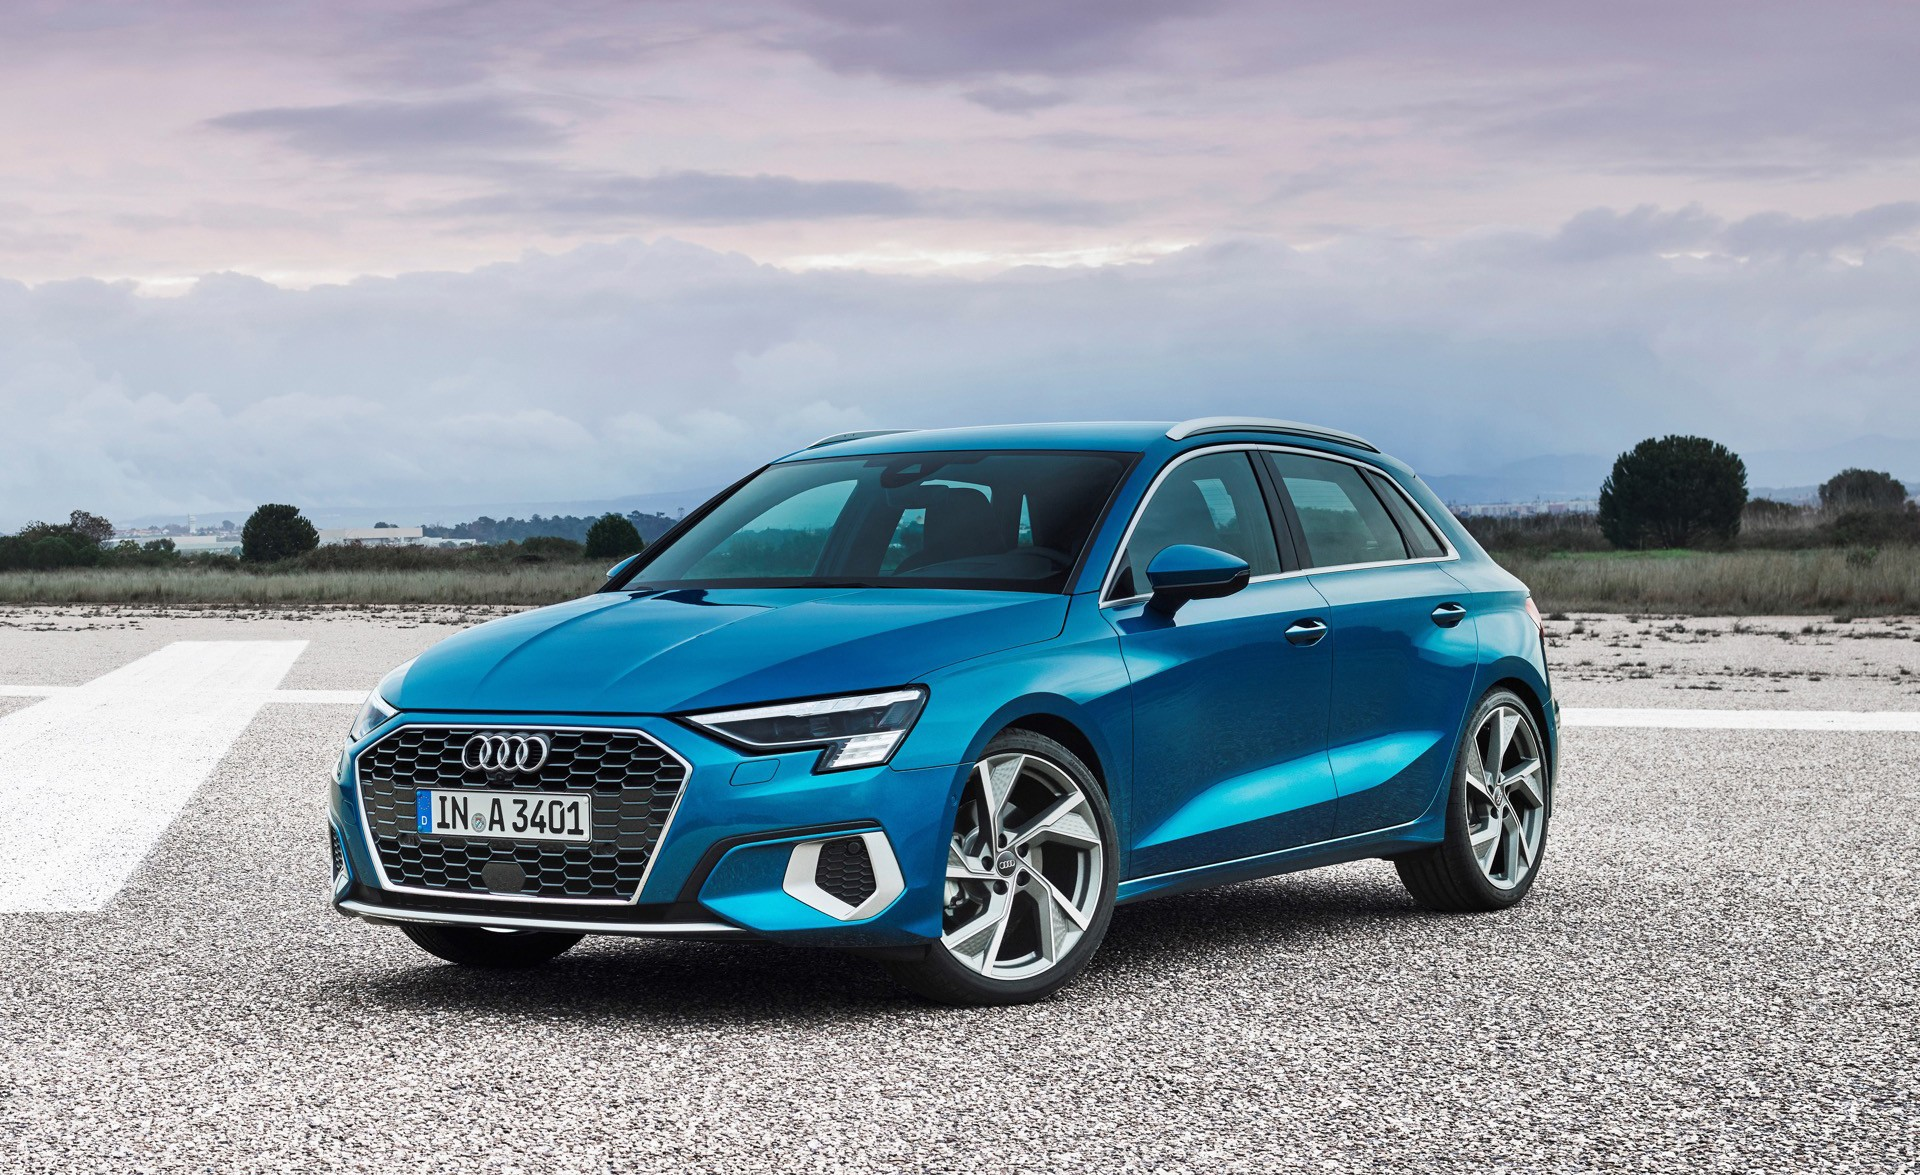 2020 Audi A3 Sportback Debuts with Sharp New Looks ...